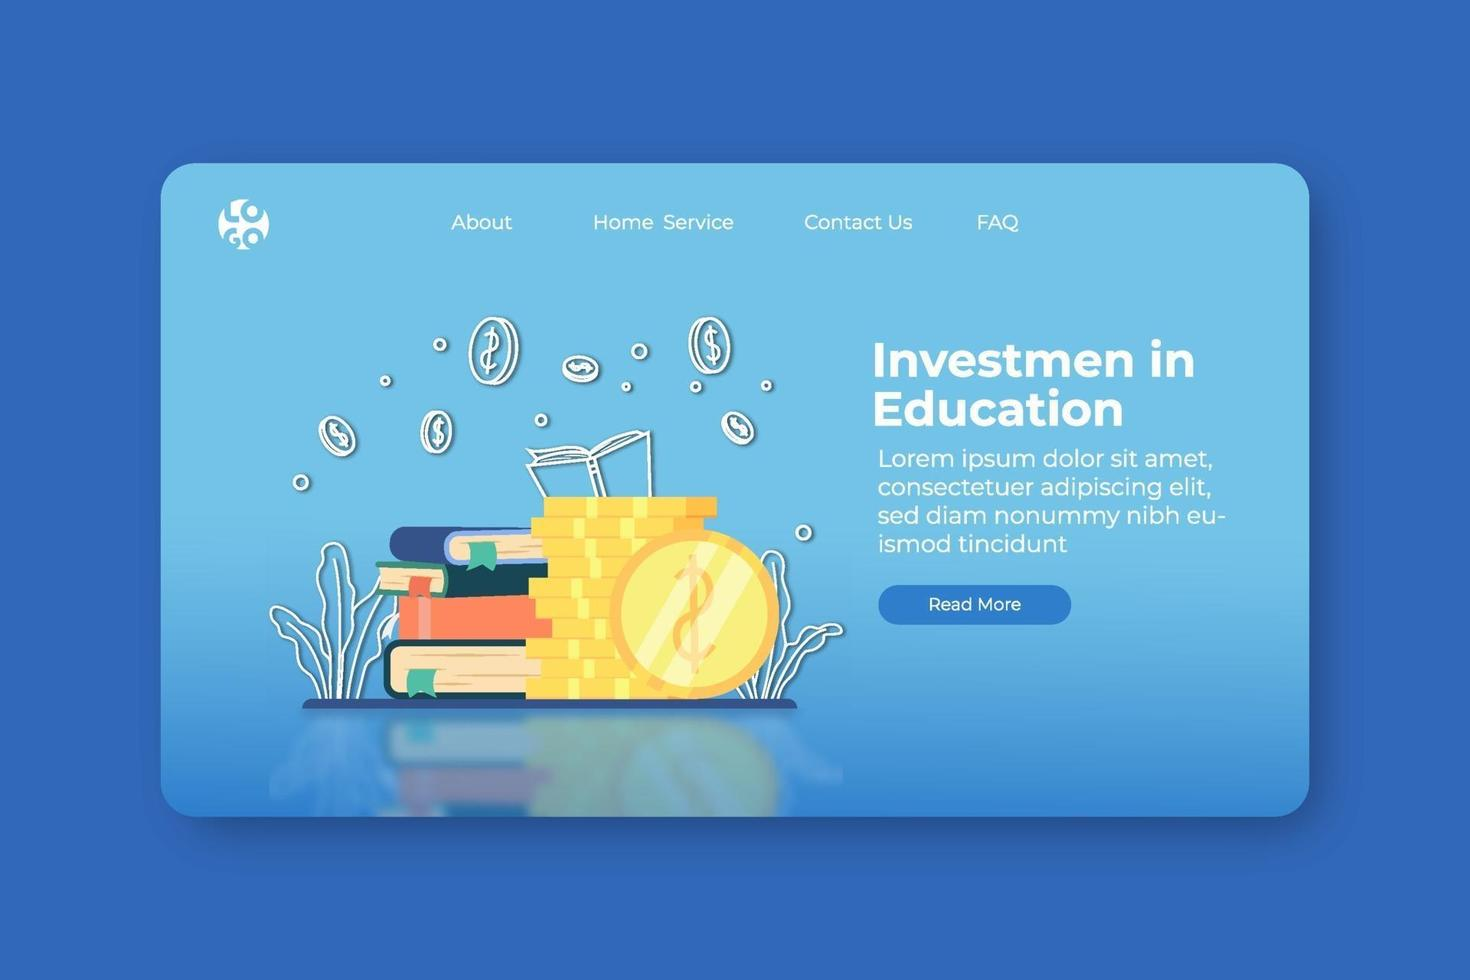 Modern Flat Design Vector Illustration. Investment In education Landing Page and Web Banner Template. Scholarship, Student Loan, Saving Money for Education, global business study, abroad educational.